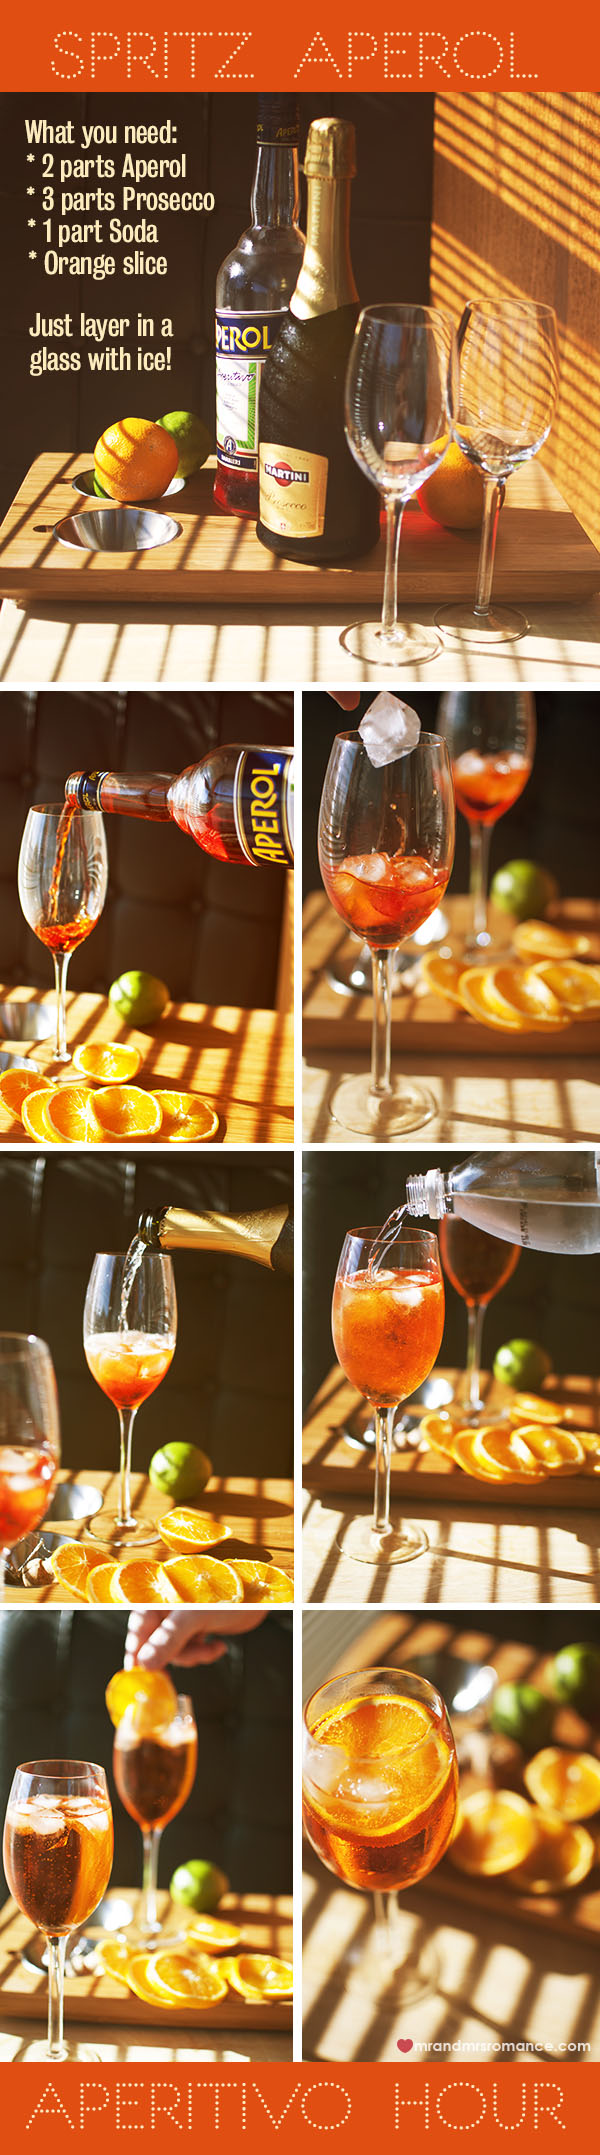 Mr and Mrs Romance - Aperitivo Hour - Spritz Aperol Recipe guide